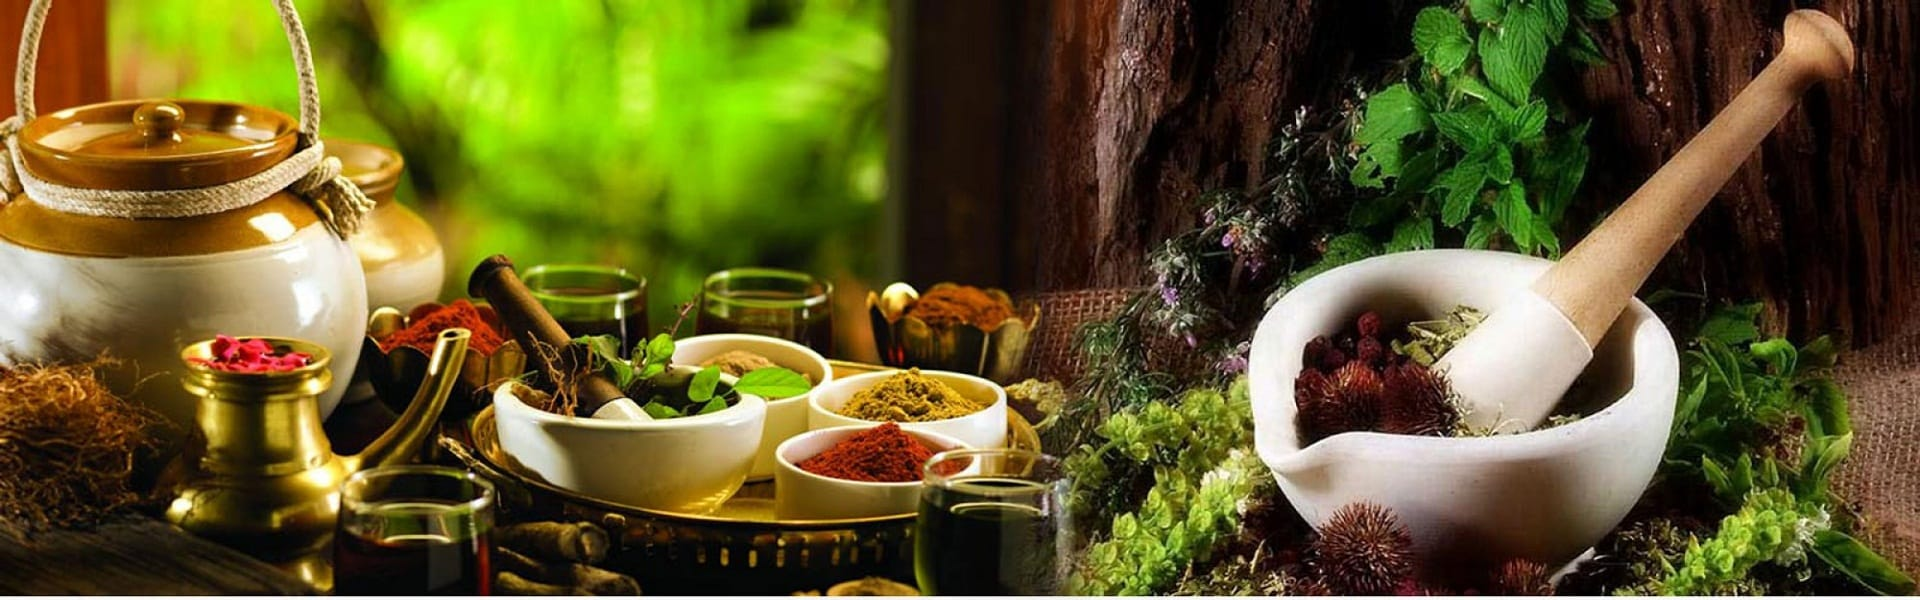 Sampurna Homeopathic Pharmacy - Homeopathy Remedies and Medicines Supplier in Naupada-Thane West, Thane